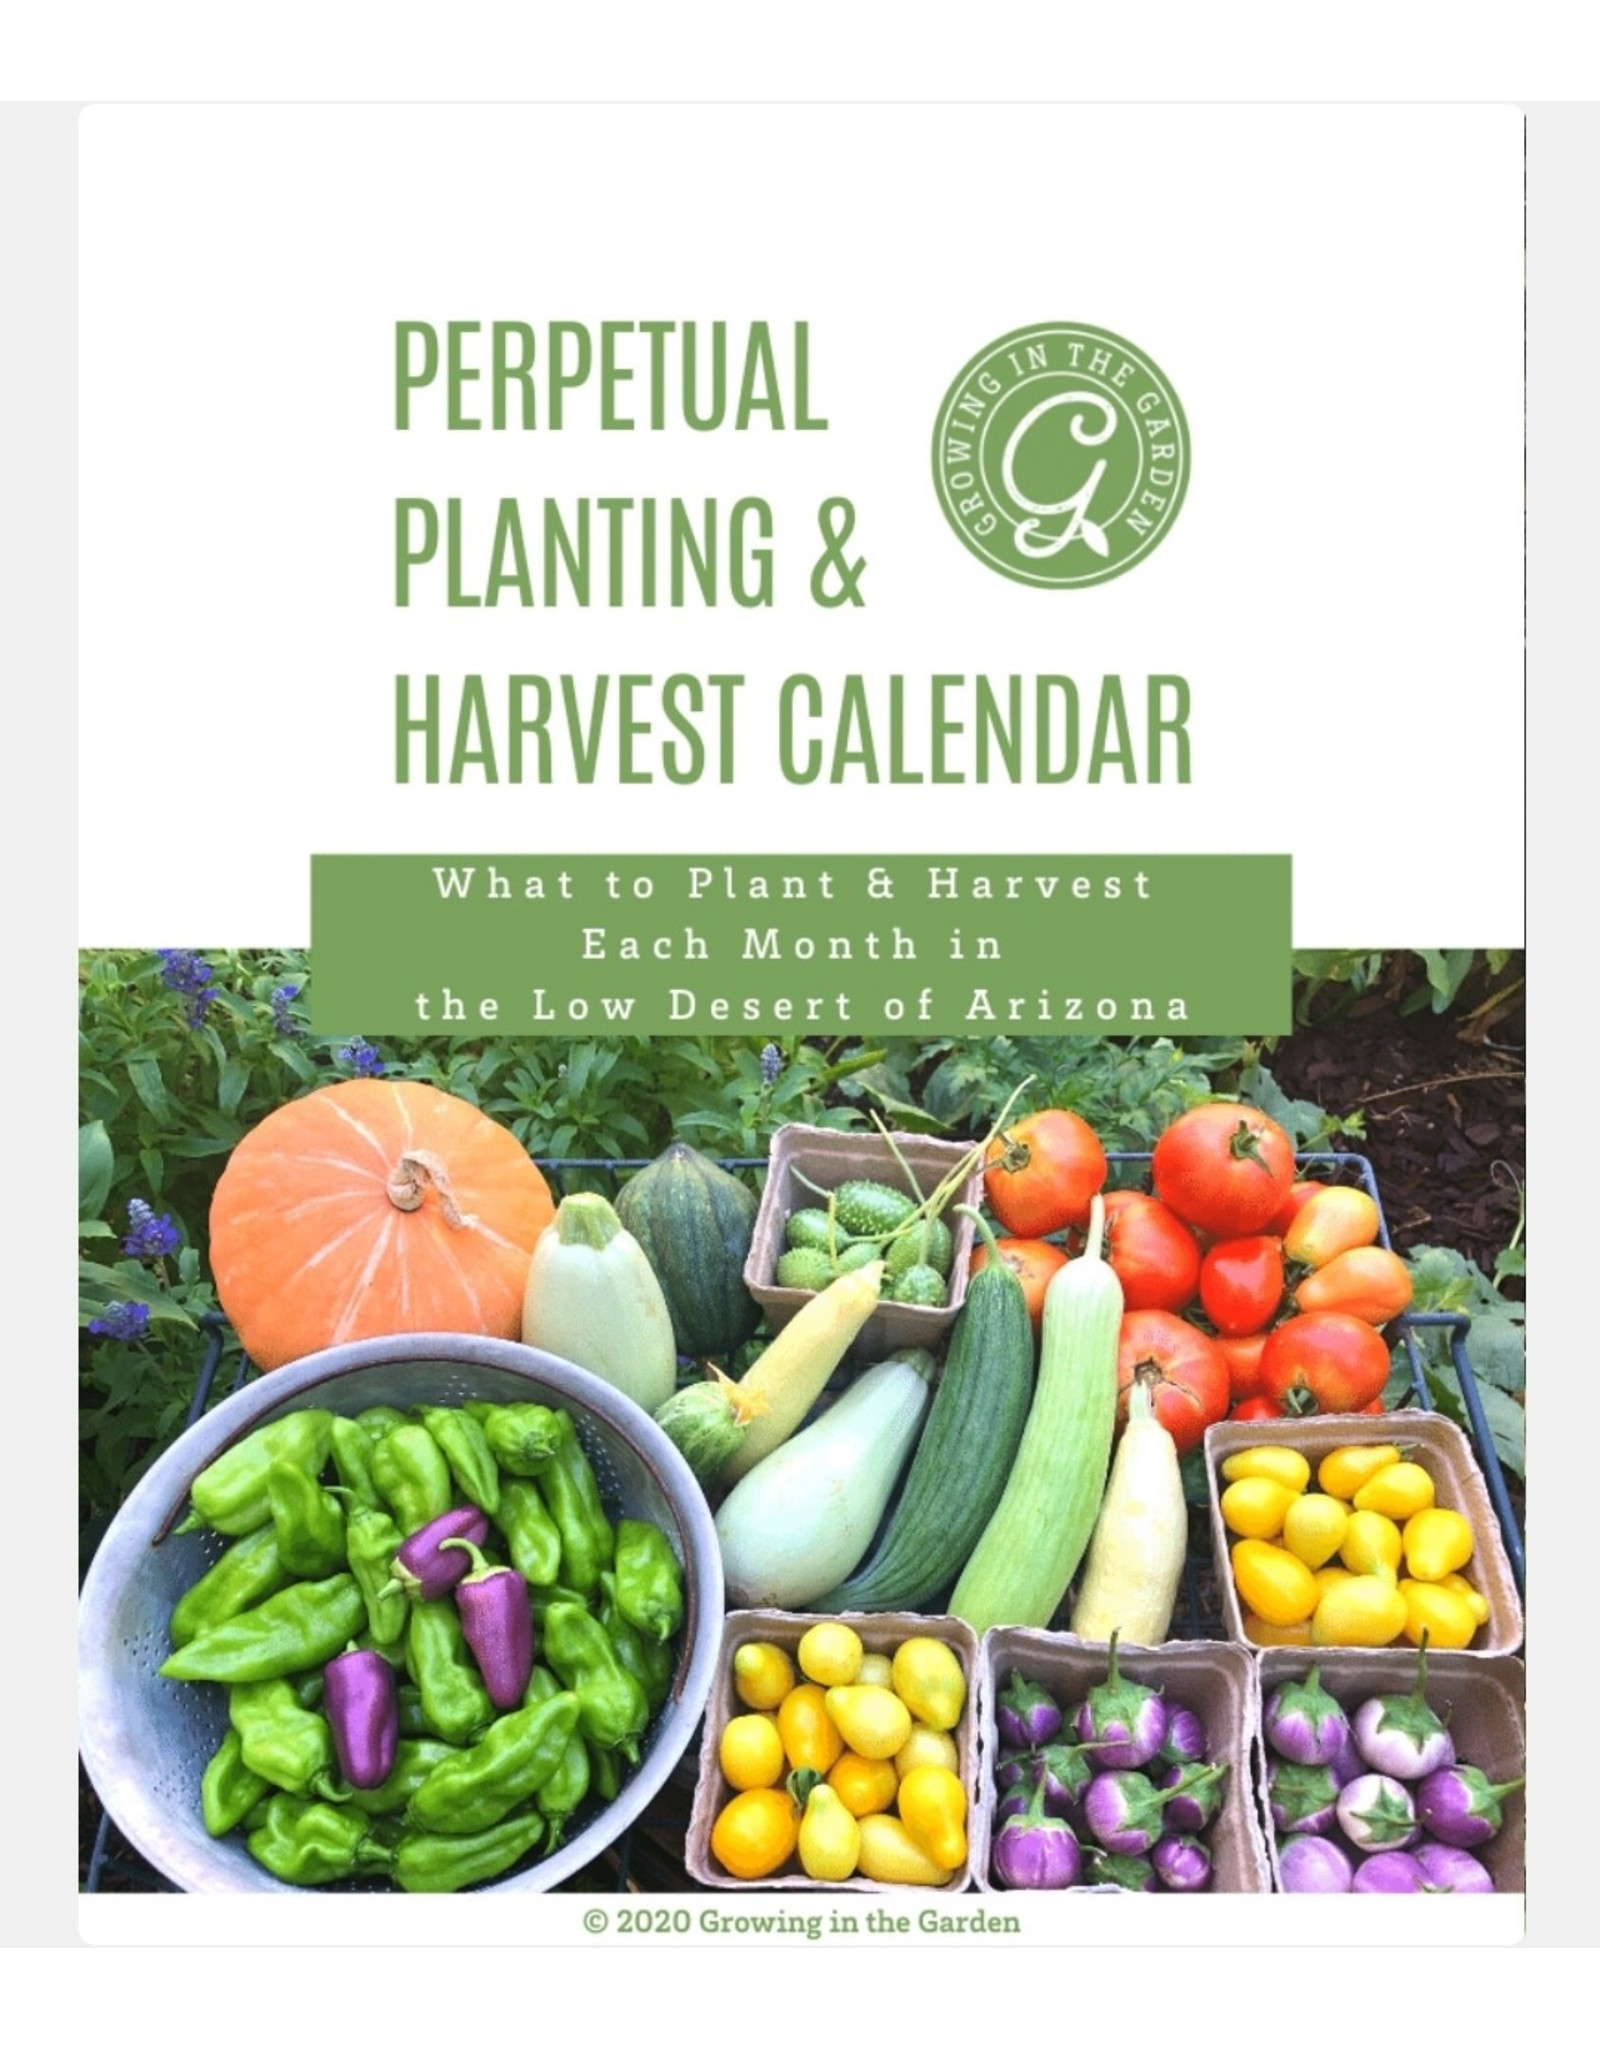 Growing in the Garden Perpetual Planting and Harvest Calendar  for the Low Desert of Arizona